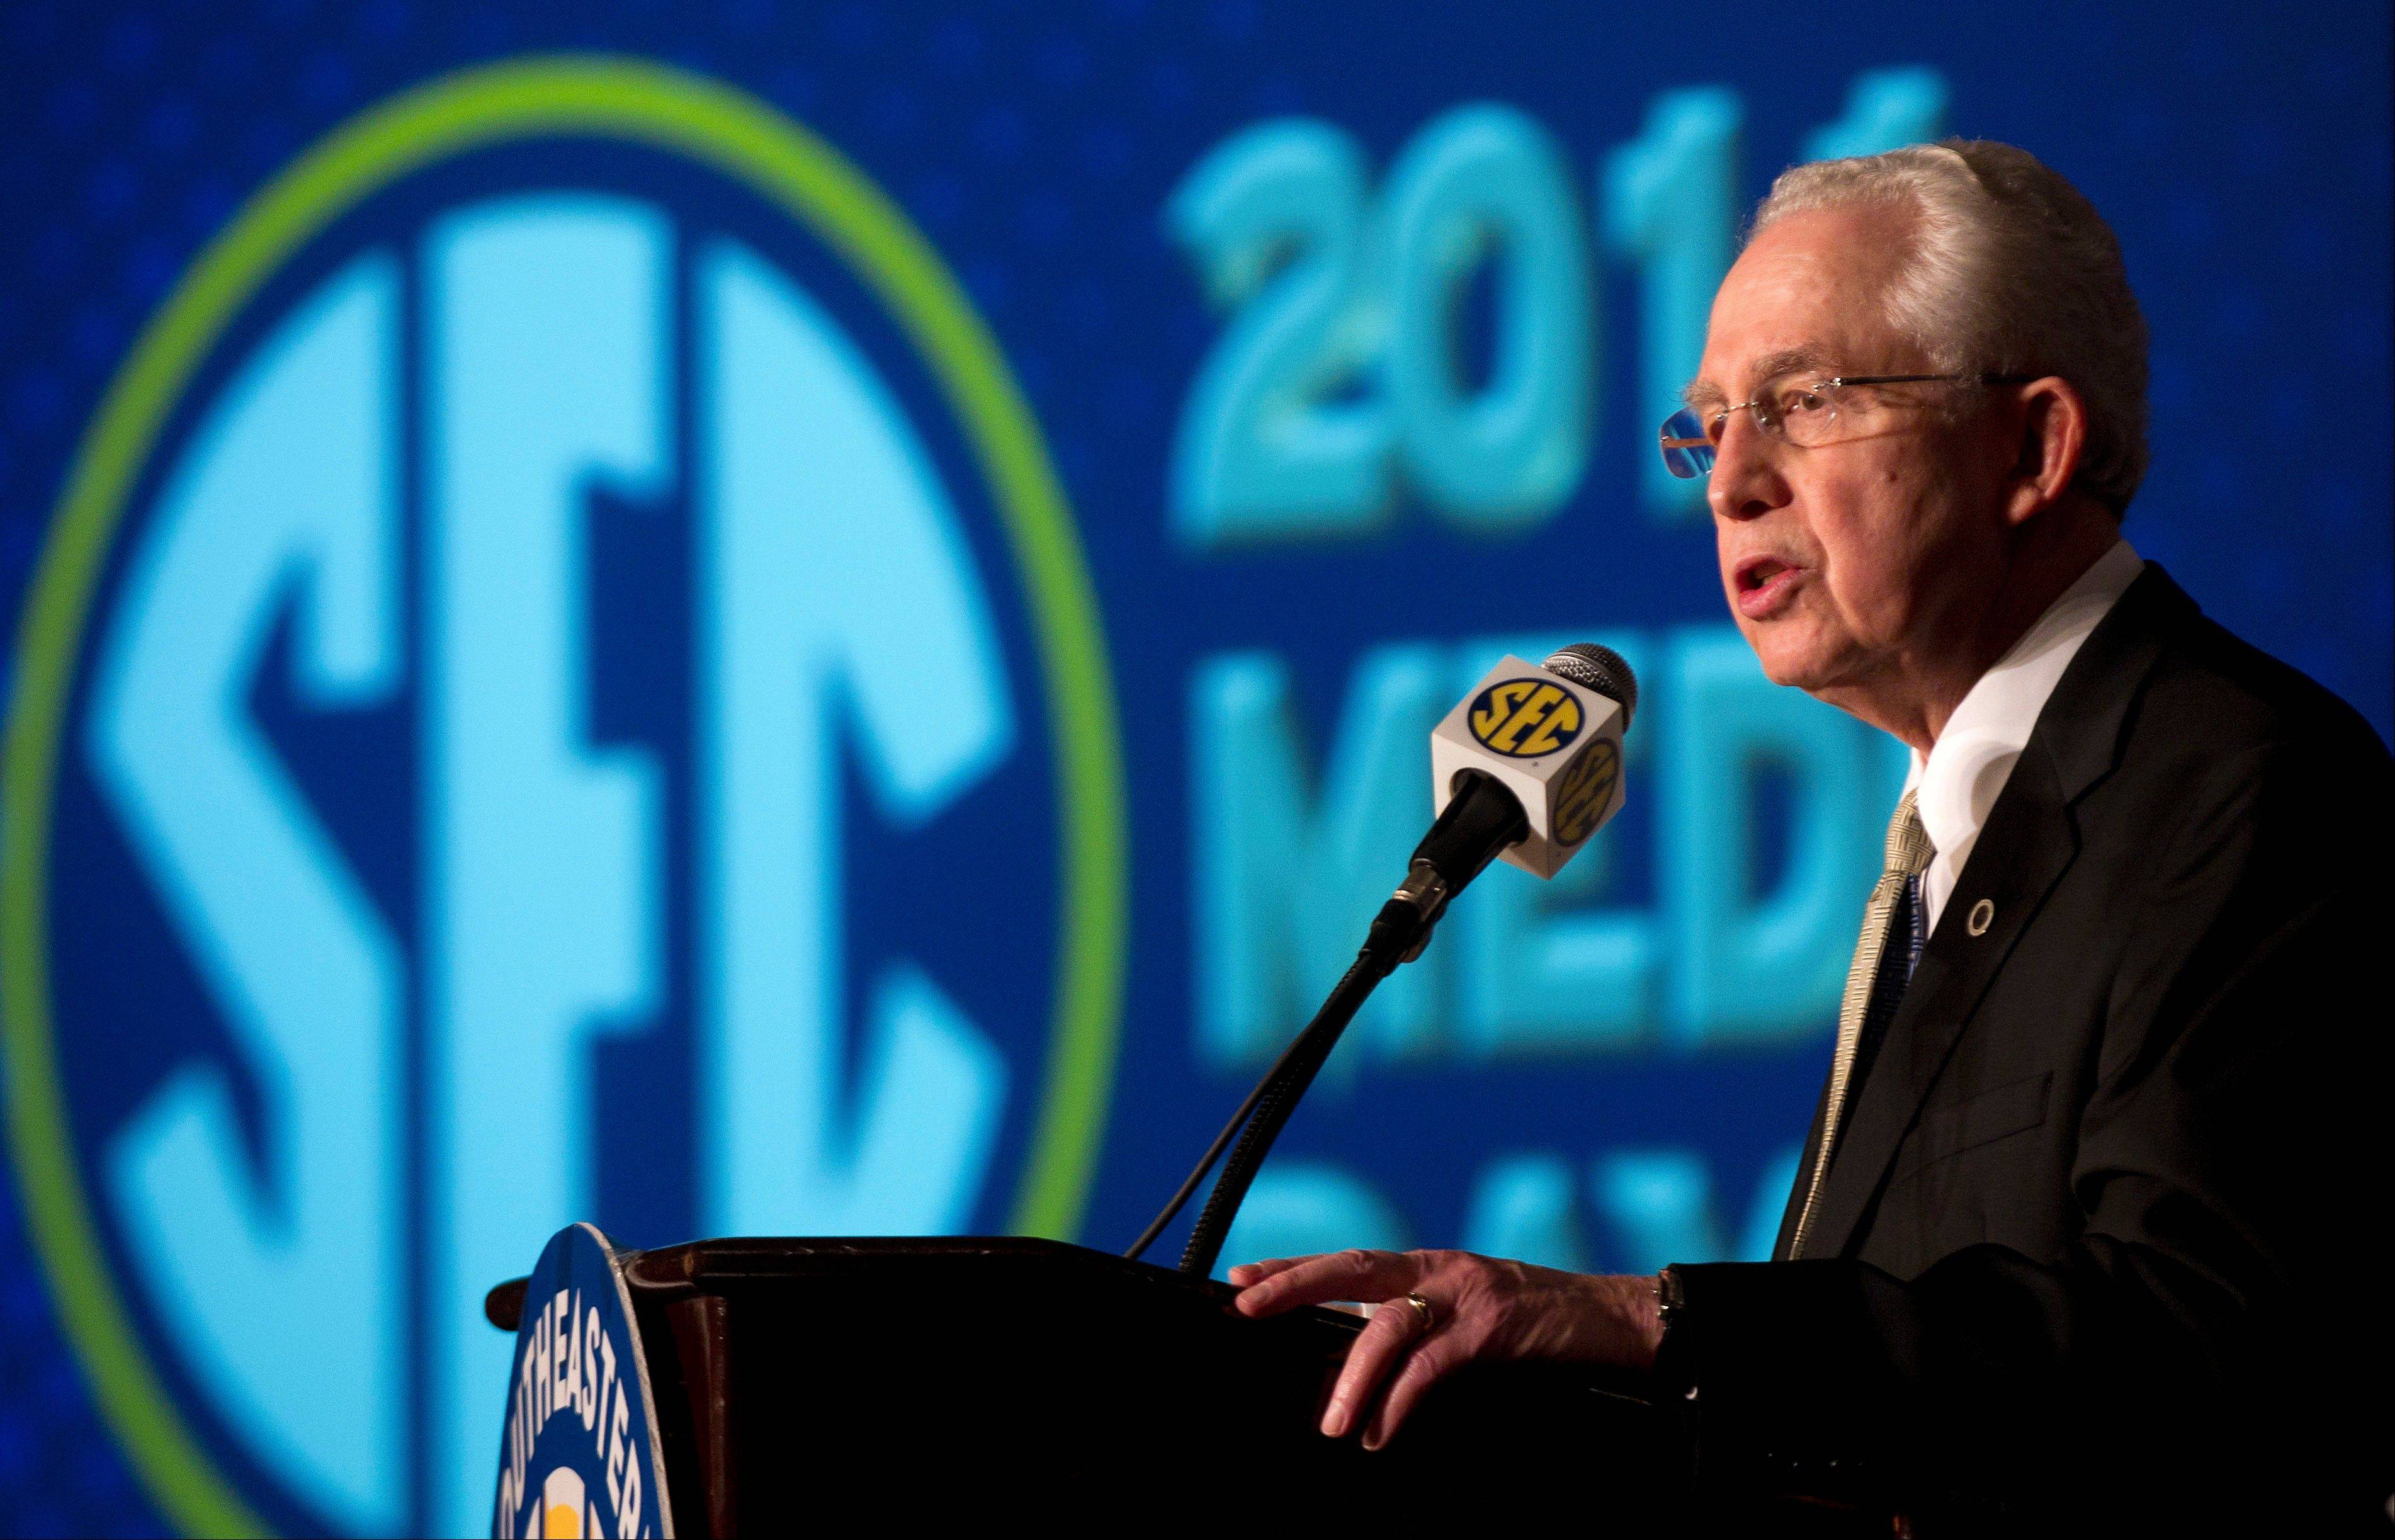 Southeastern Conference Commissioner Mike Slive talks with reporters during Southeastern Conference Football Media Days in Birmingham, Ala., on Wednesday.